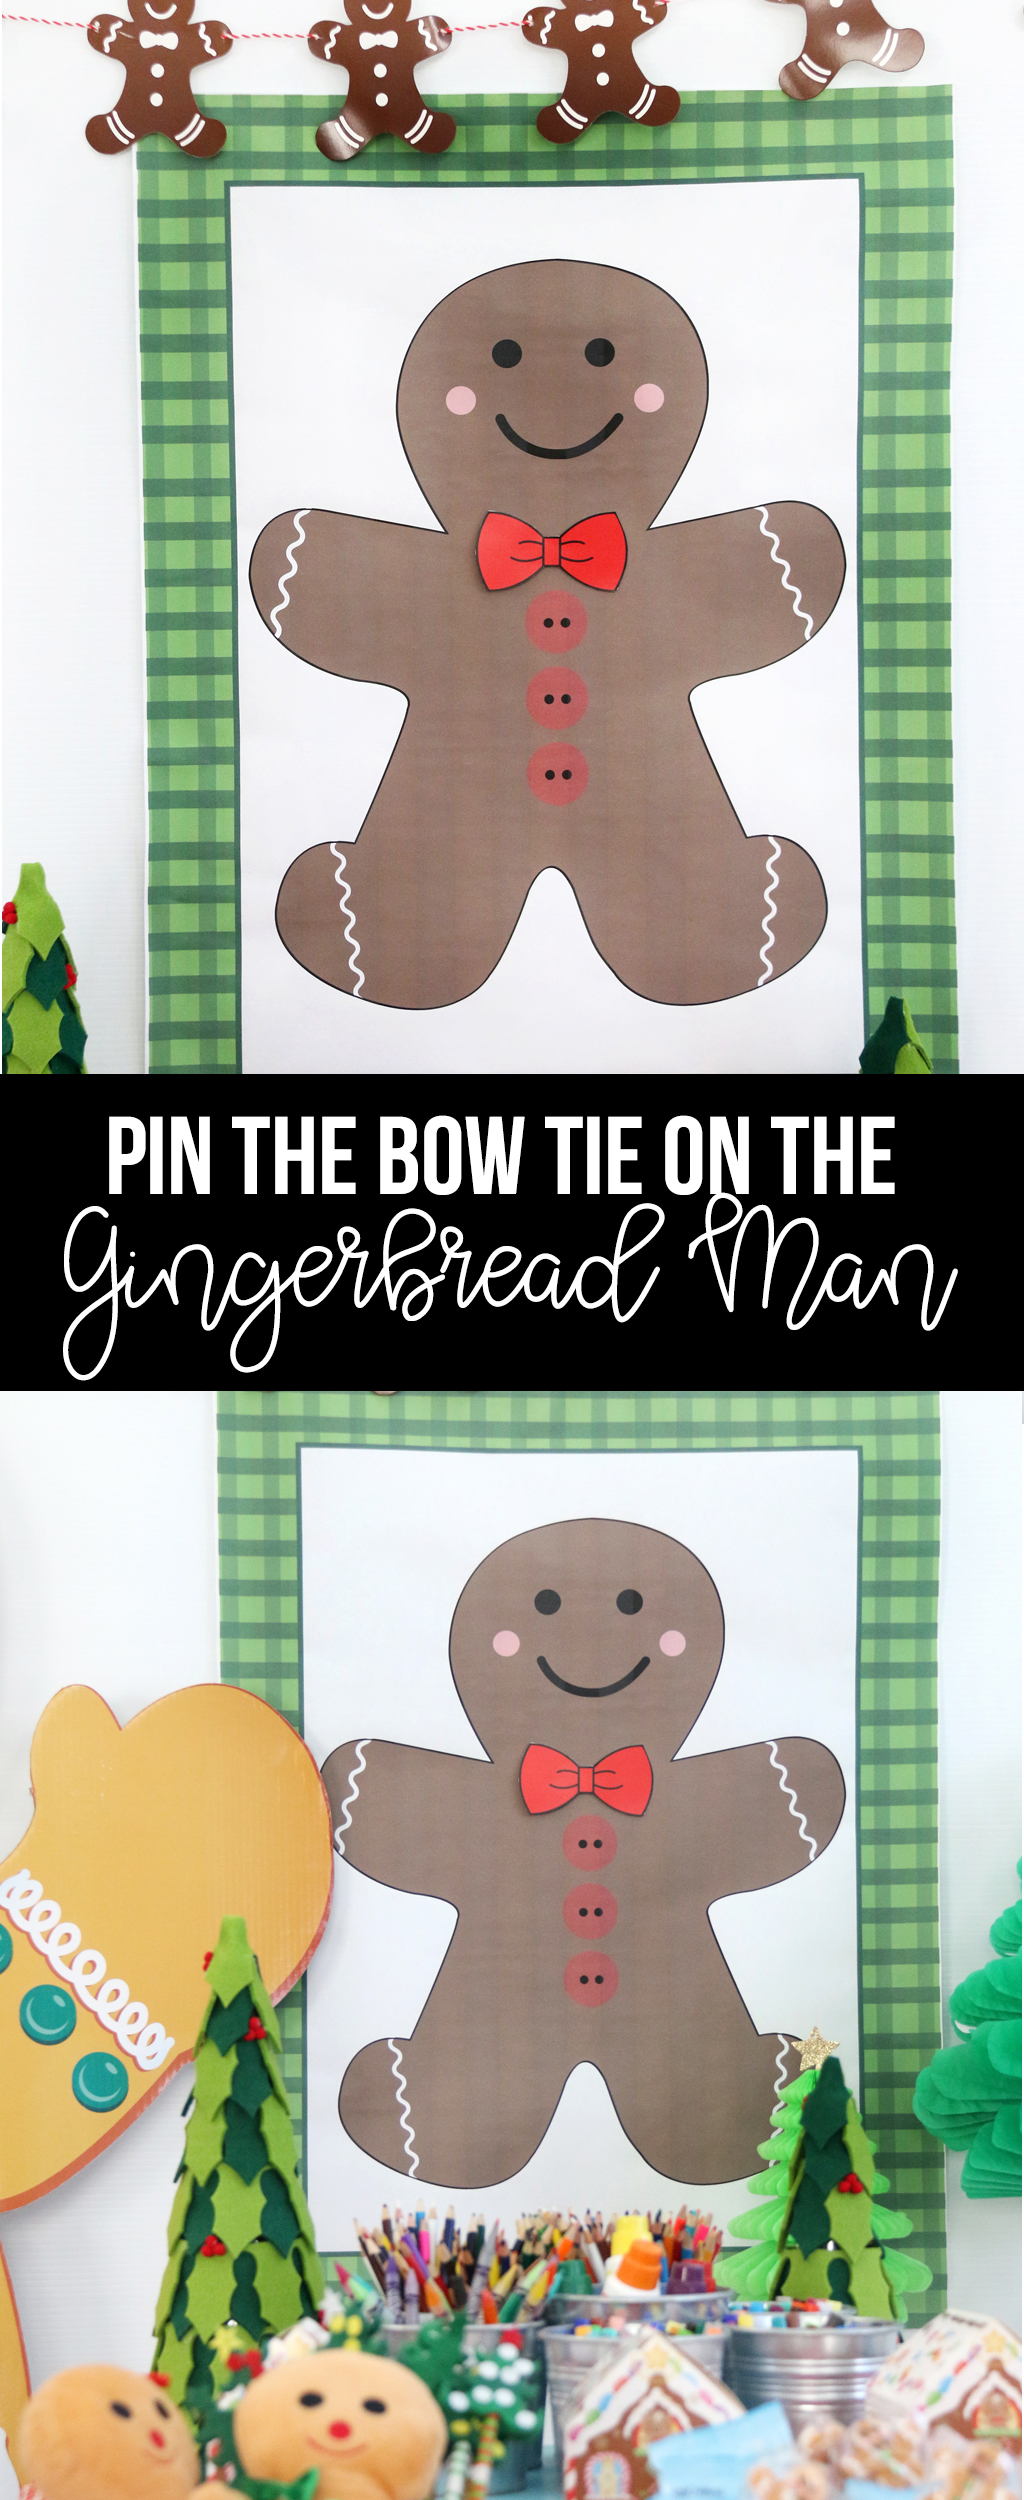 Pin the Bow Tie on the Gingerbread Man